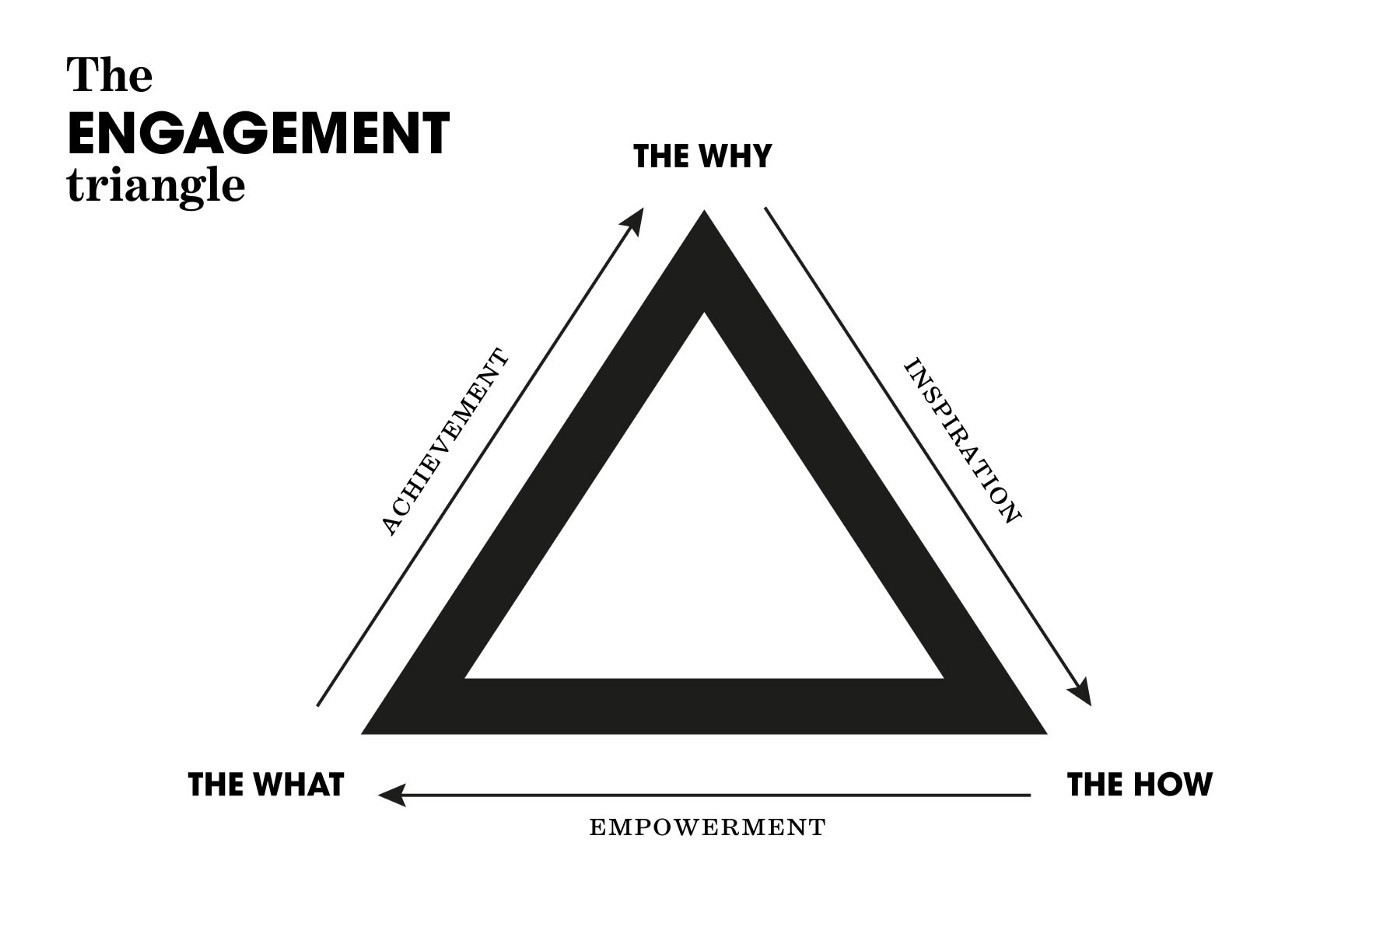 The Engagement Triangle—which shows you how to gain achievement, inspiration, and empowerment through The What, The Why, & The How.